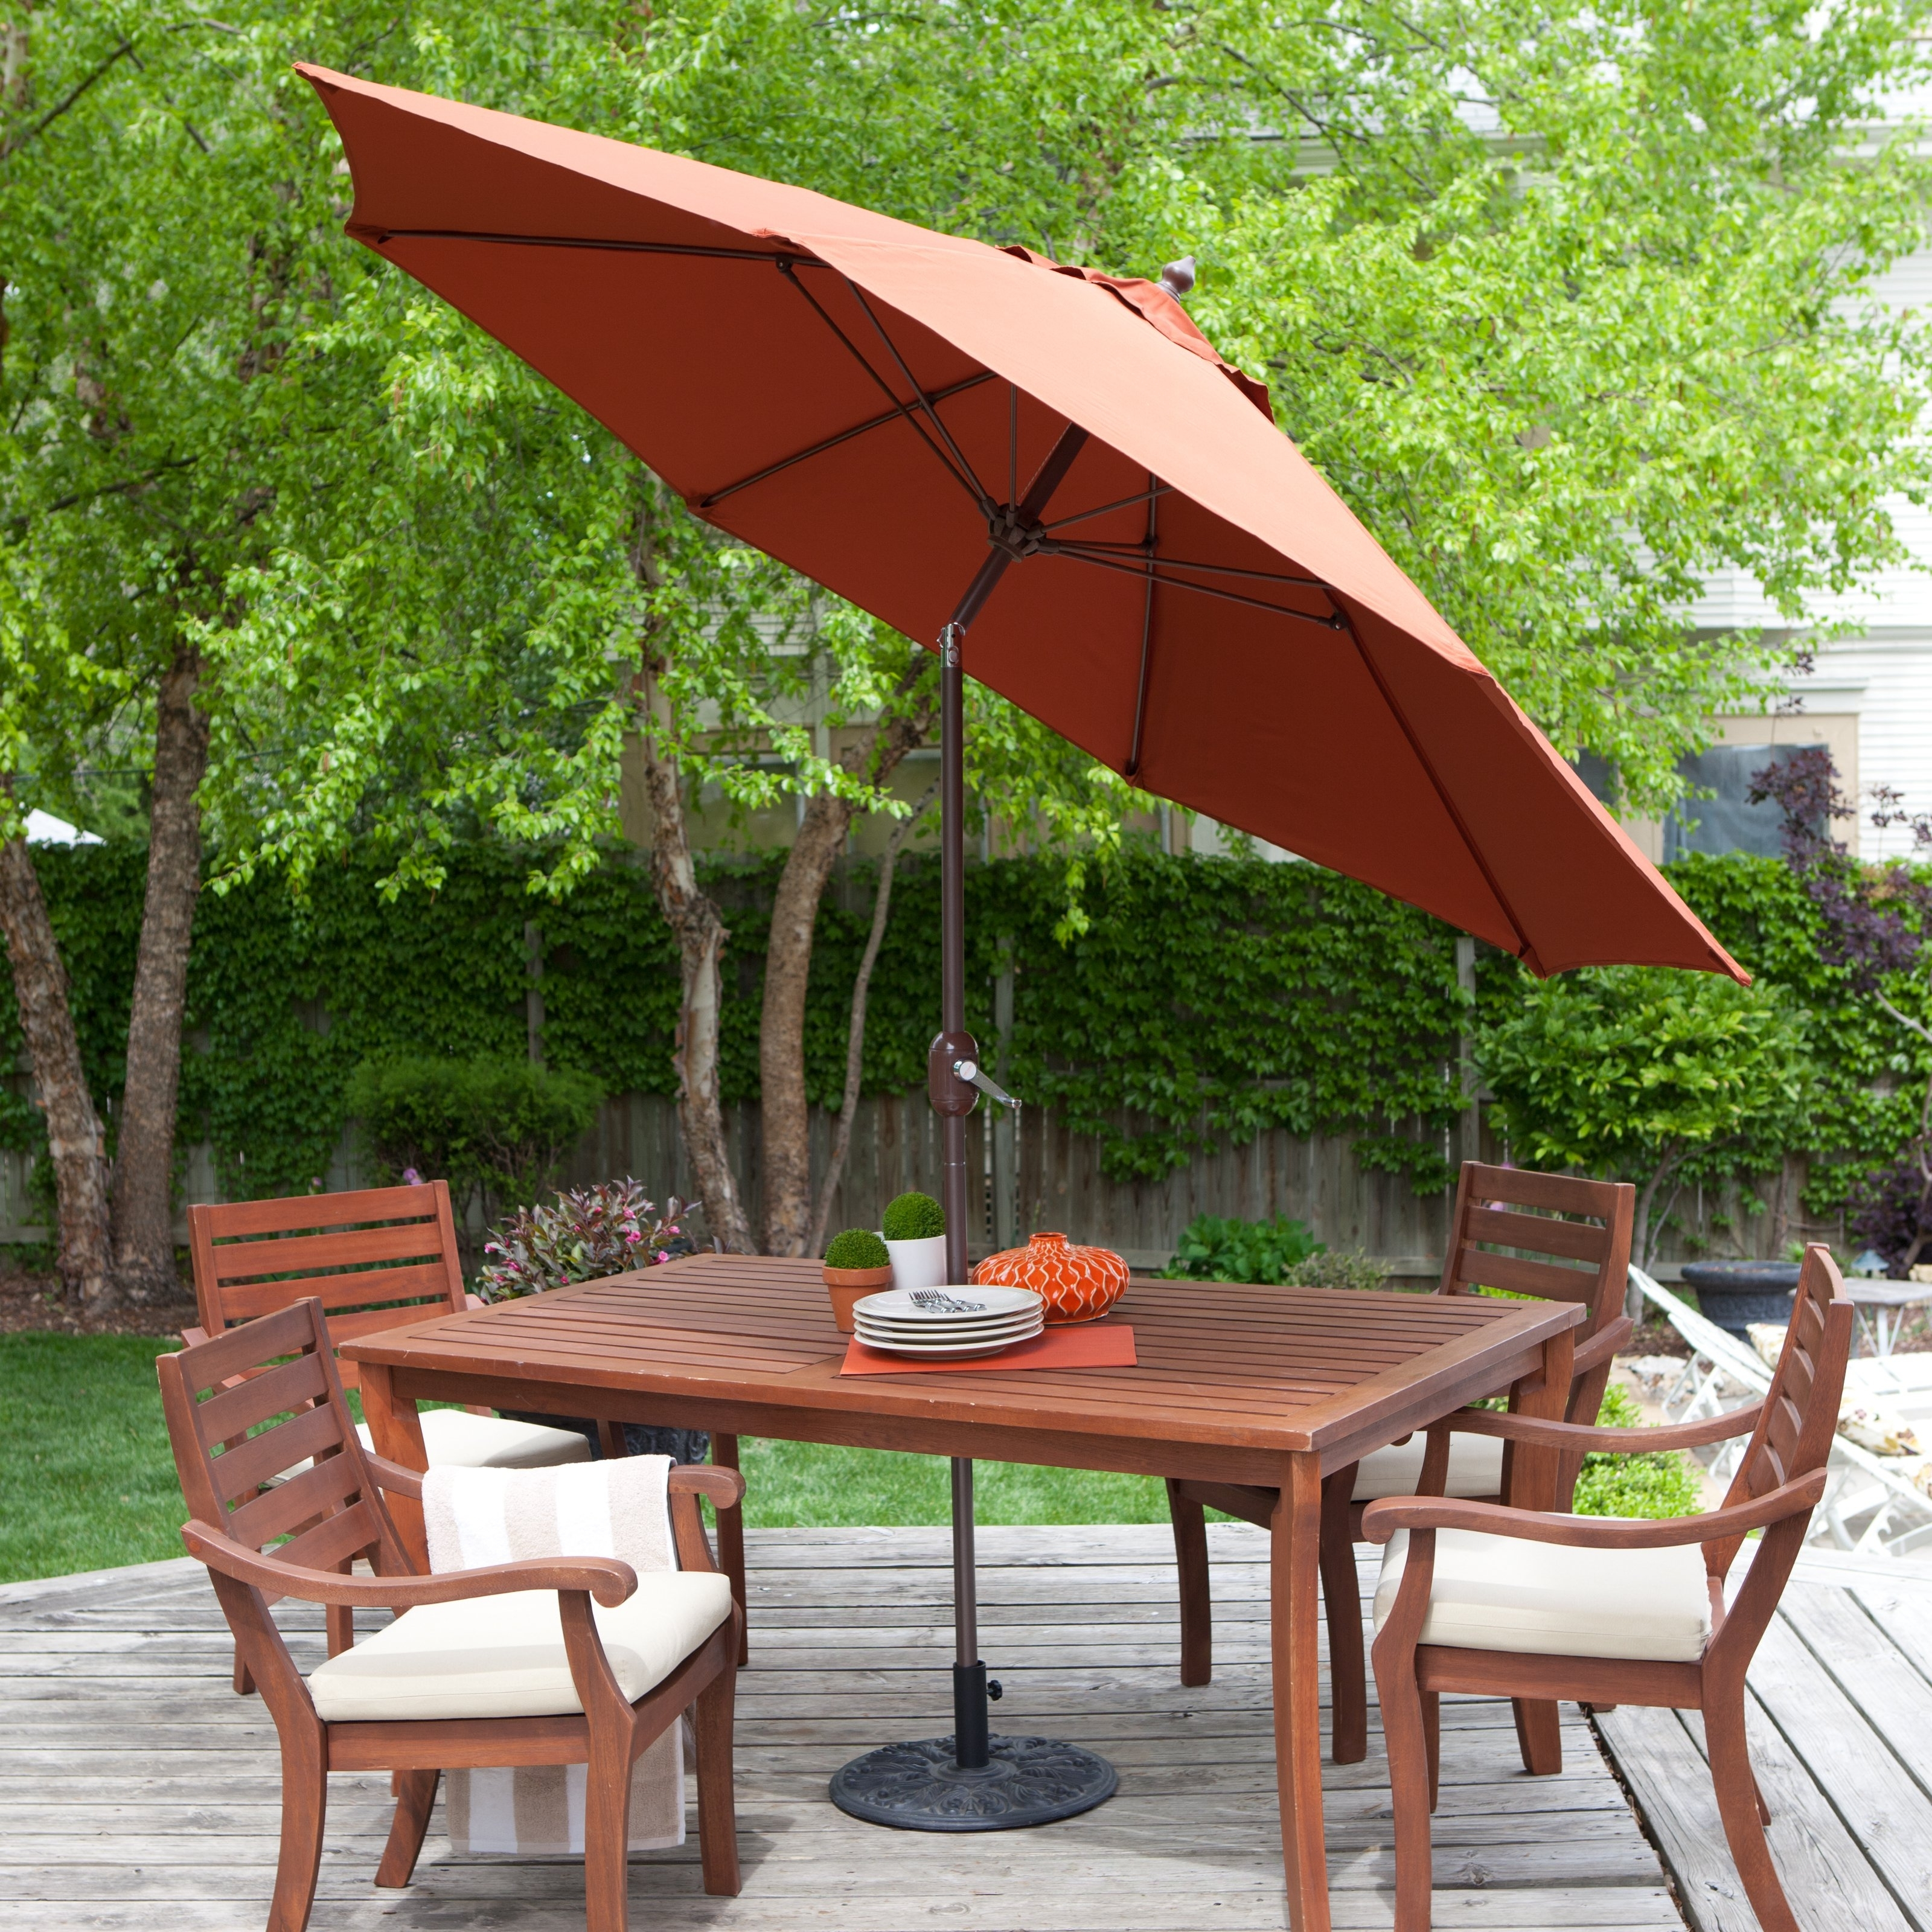 Current Galtech Sunbrella 11 Ft. Maximum Shade Deluxe Aluminum Auto Tilt With Patio Umbrellas With Sunbrella Fabric (Gallery 14 of 20)